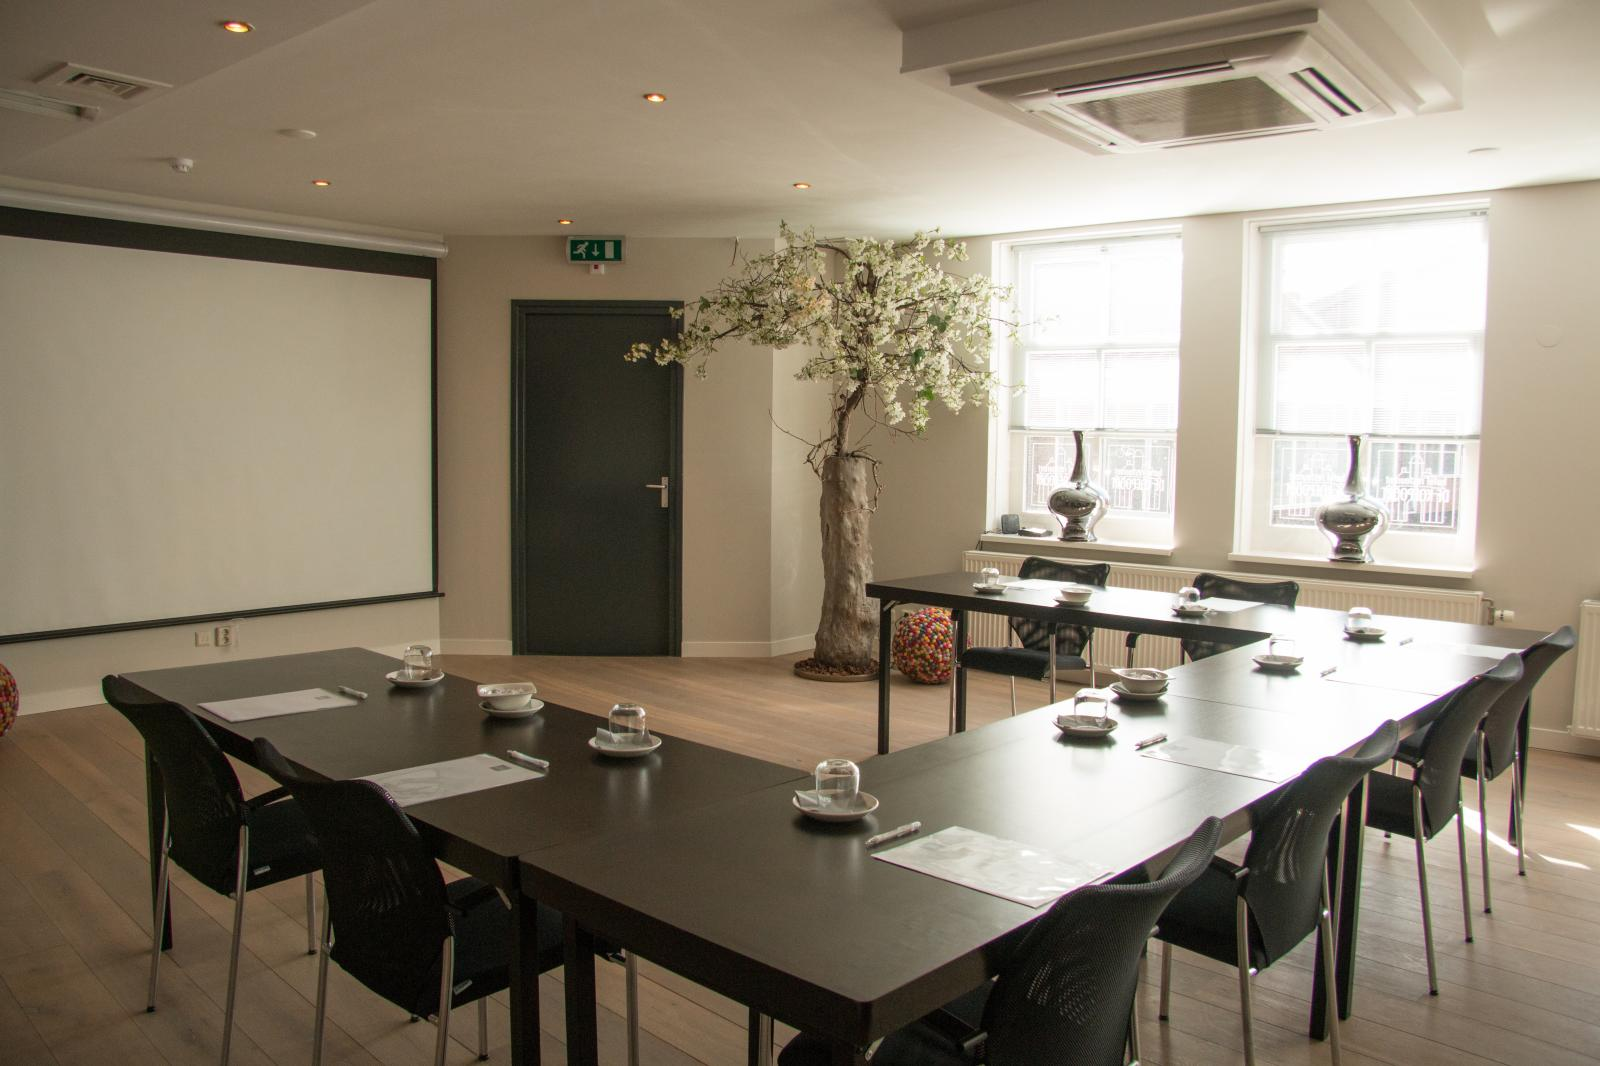 Our beautiful inspiring meetingroom!